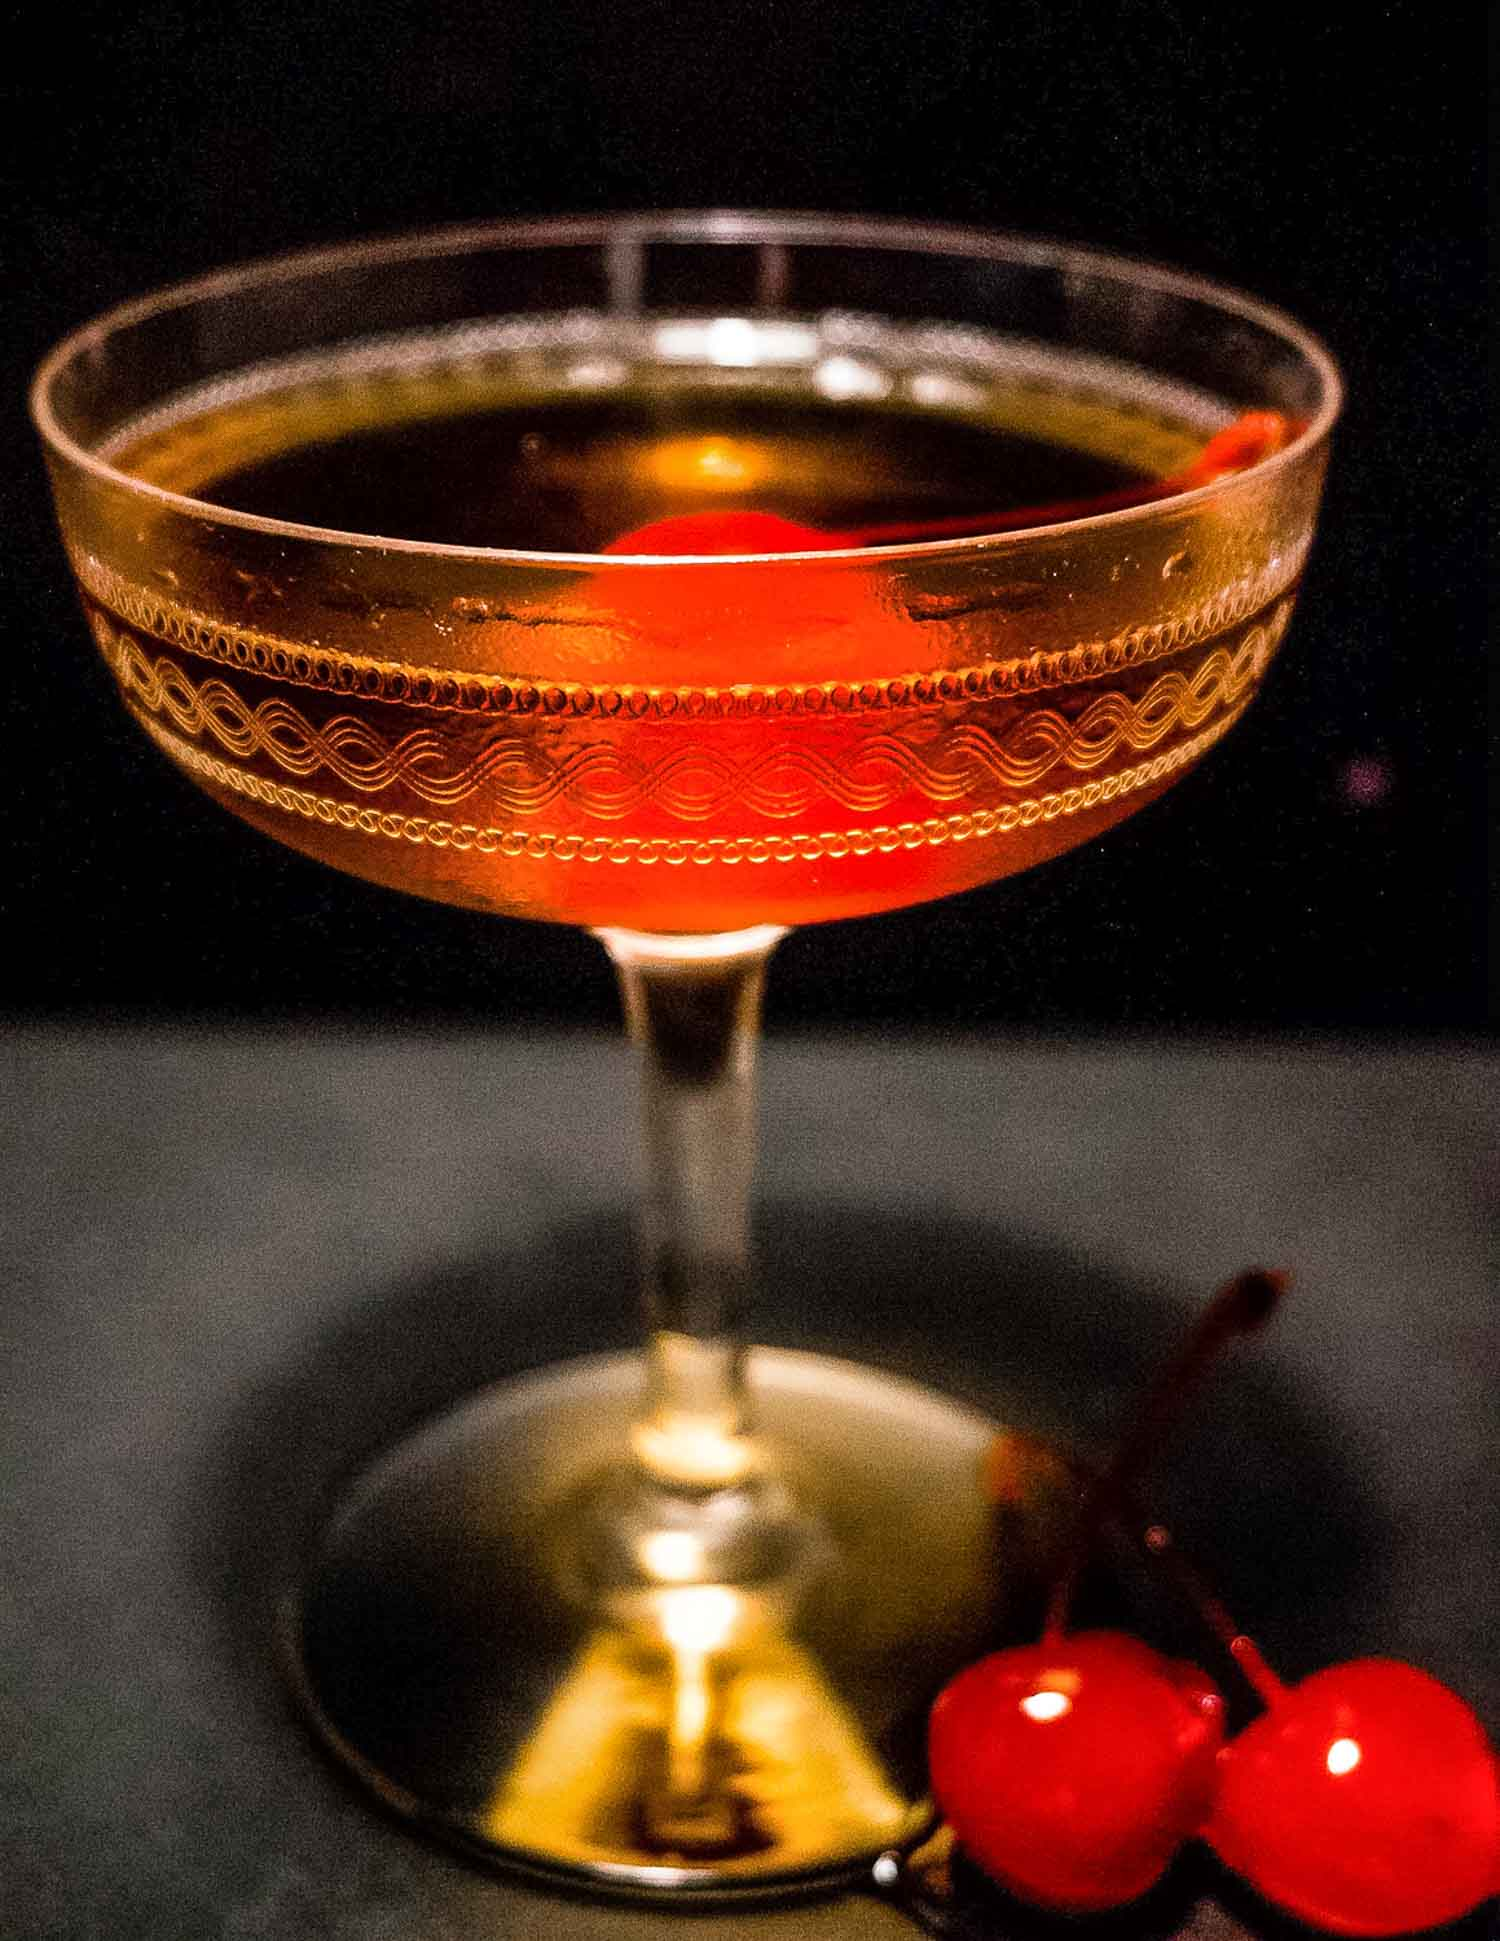 Manhattan Whiskey cocktail on a black background